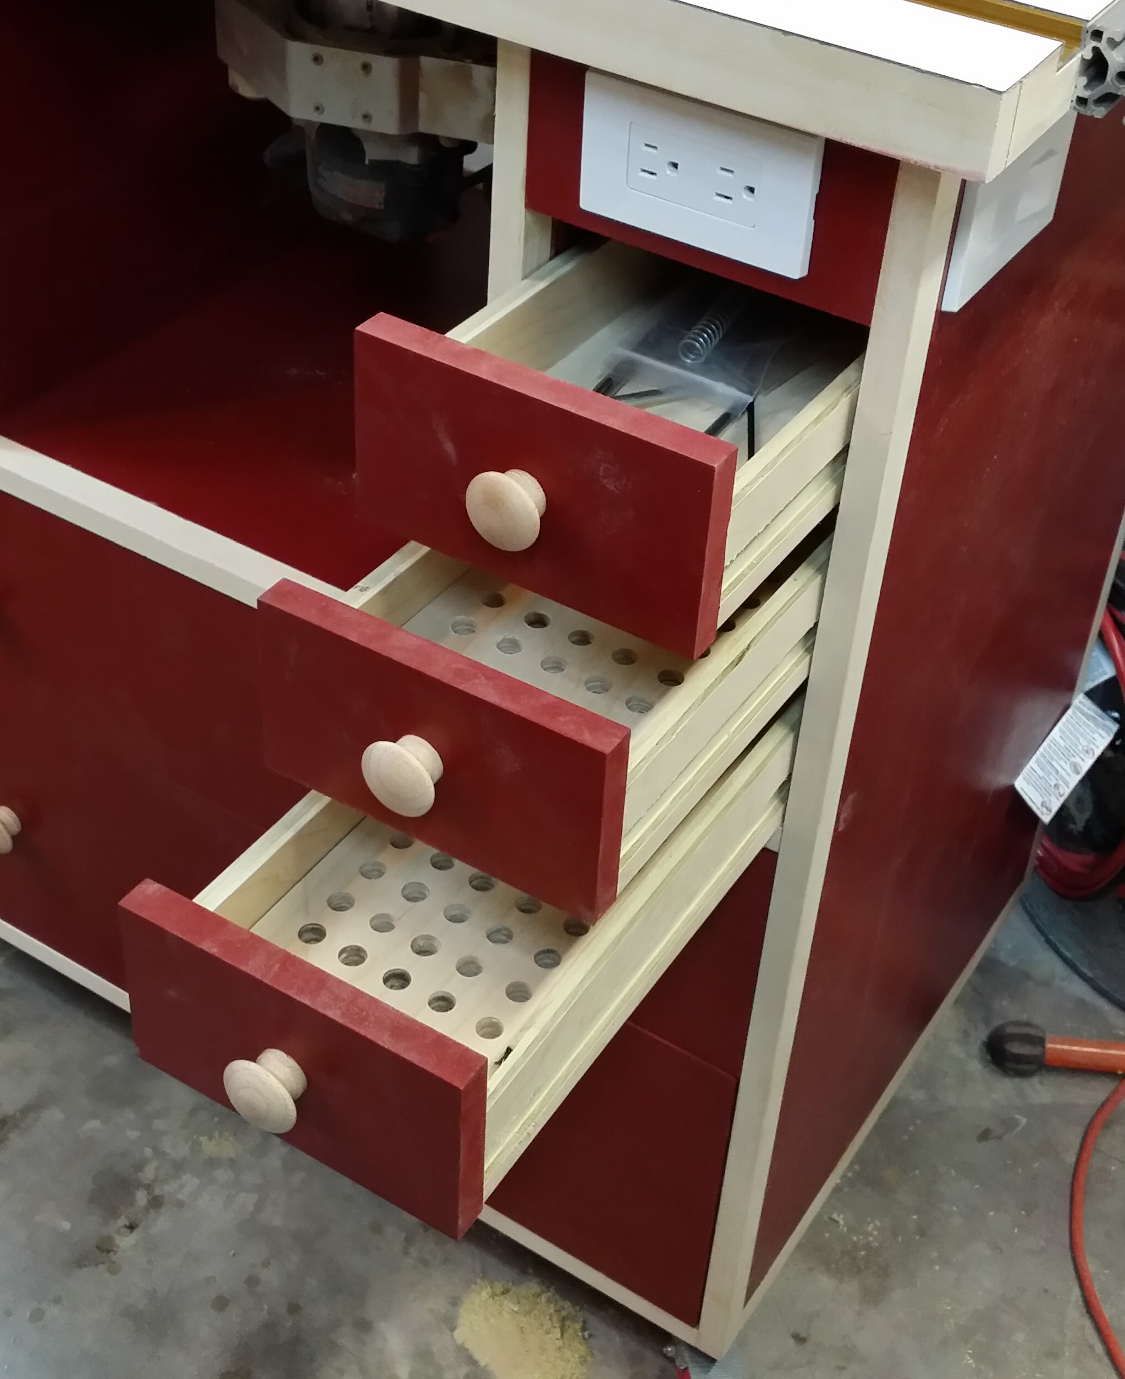 Router Table Build Completion Diary Of A Wood Nerd